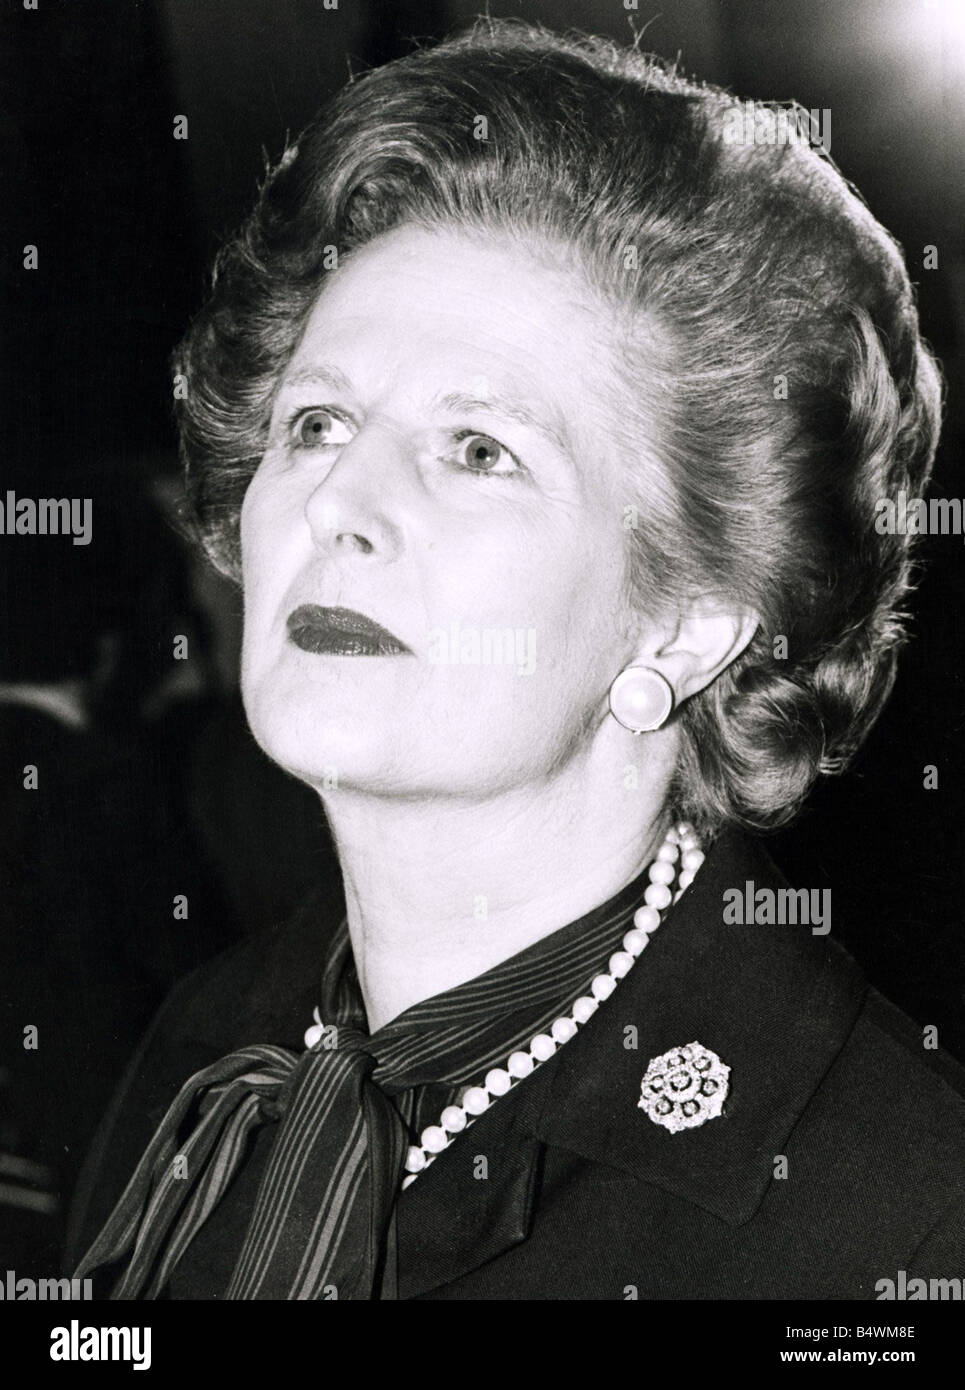 Margaret Thatcher Prime Minister Coiffured Hair Pearls Broach Stock Photo Alamy